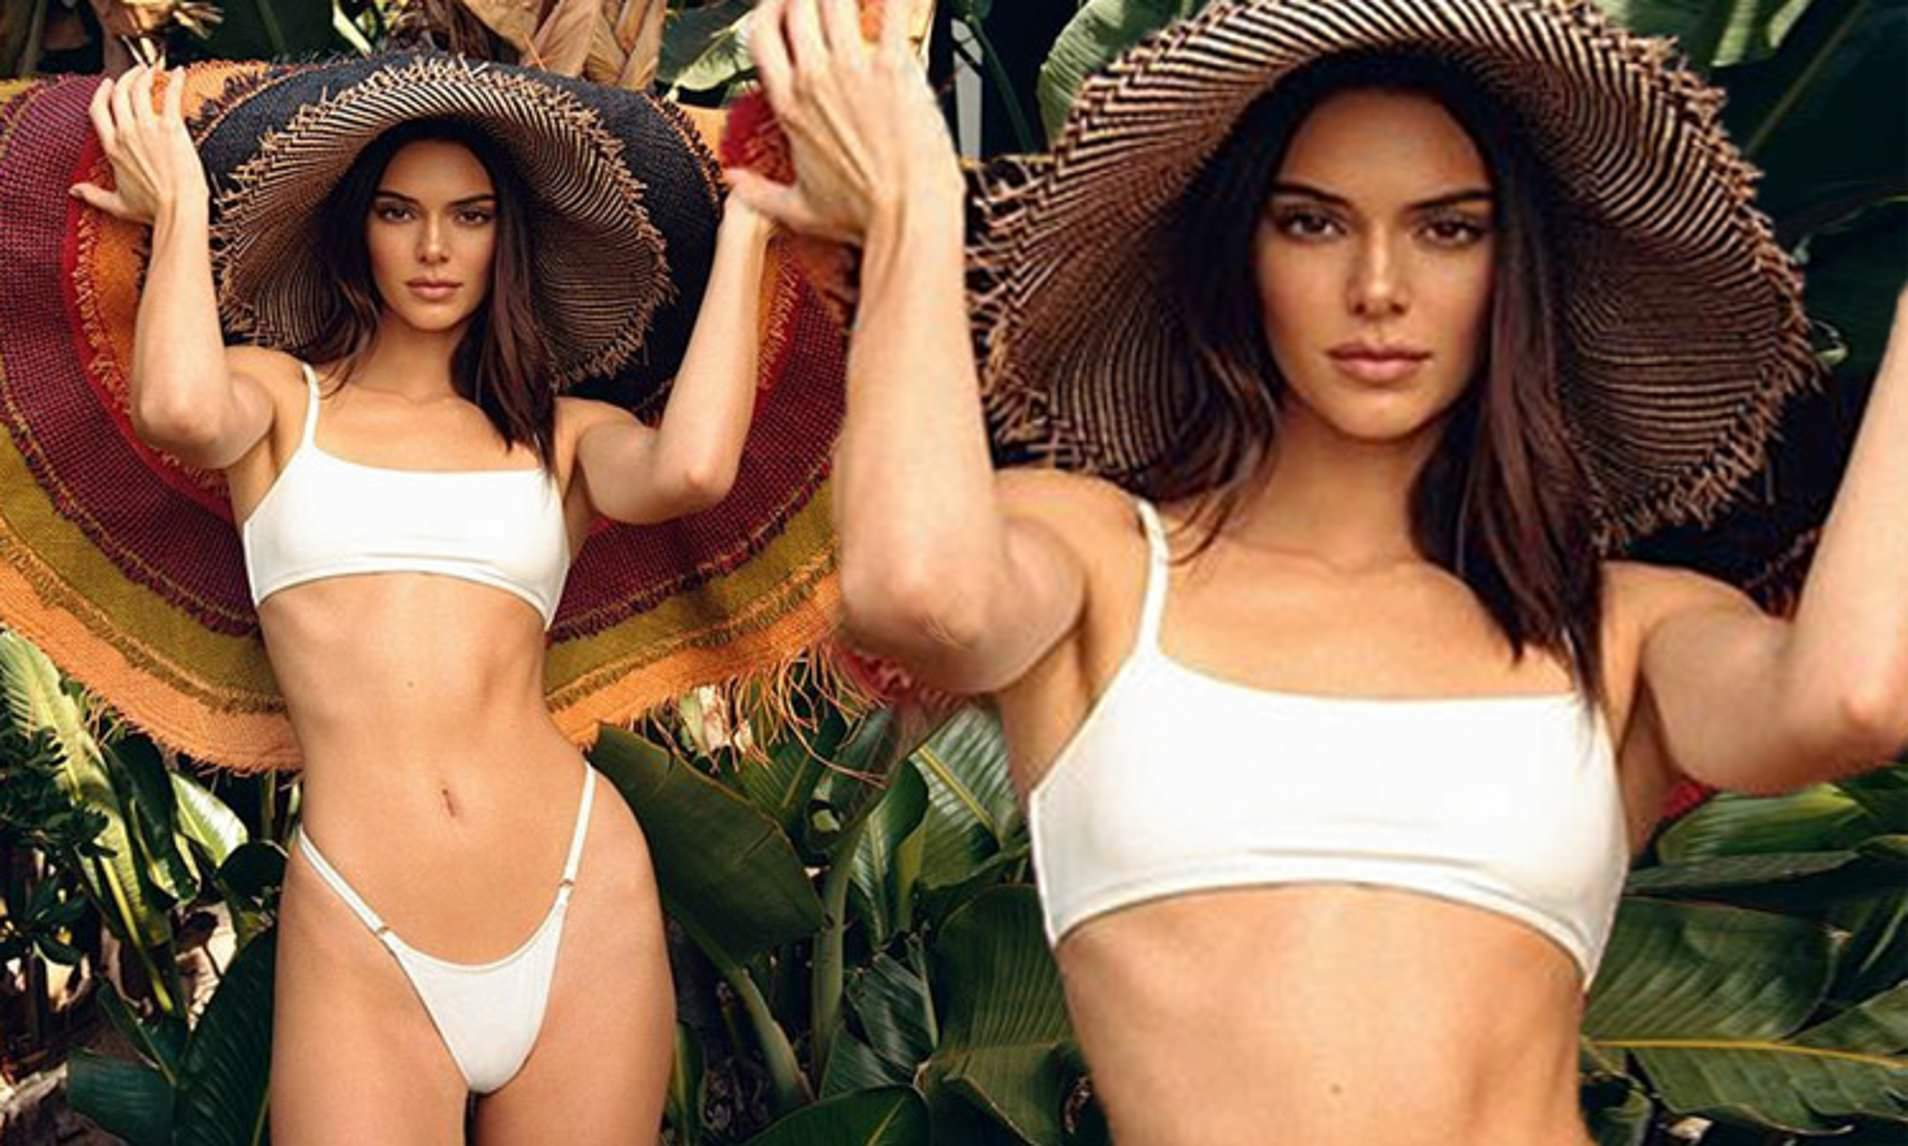 Hot and nude work of Kendall Jenner 15 5